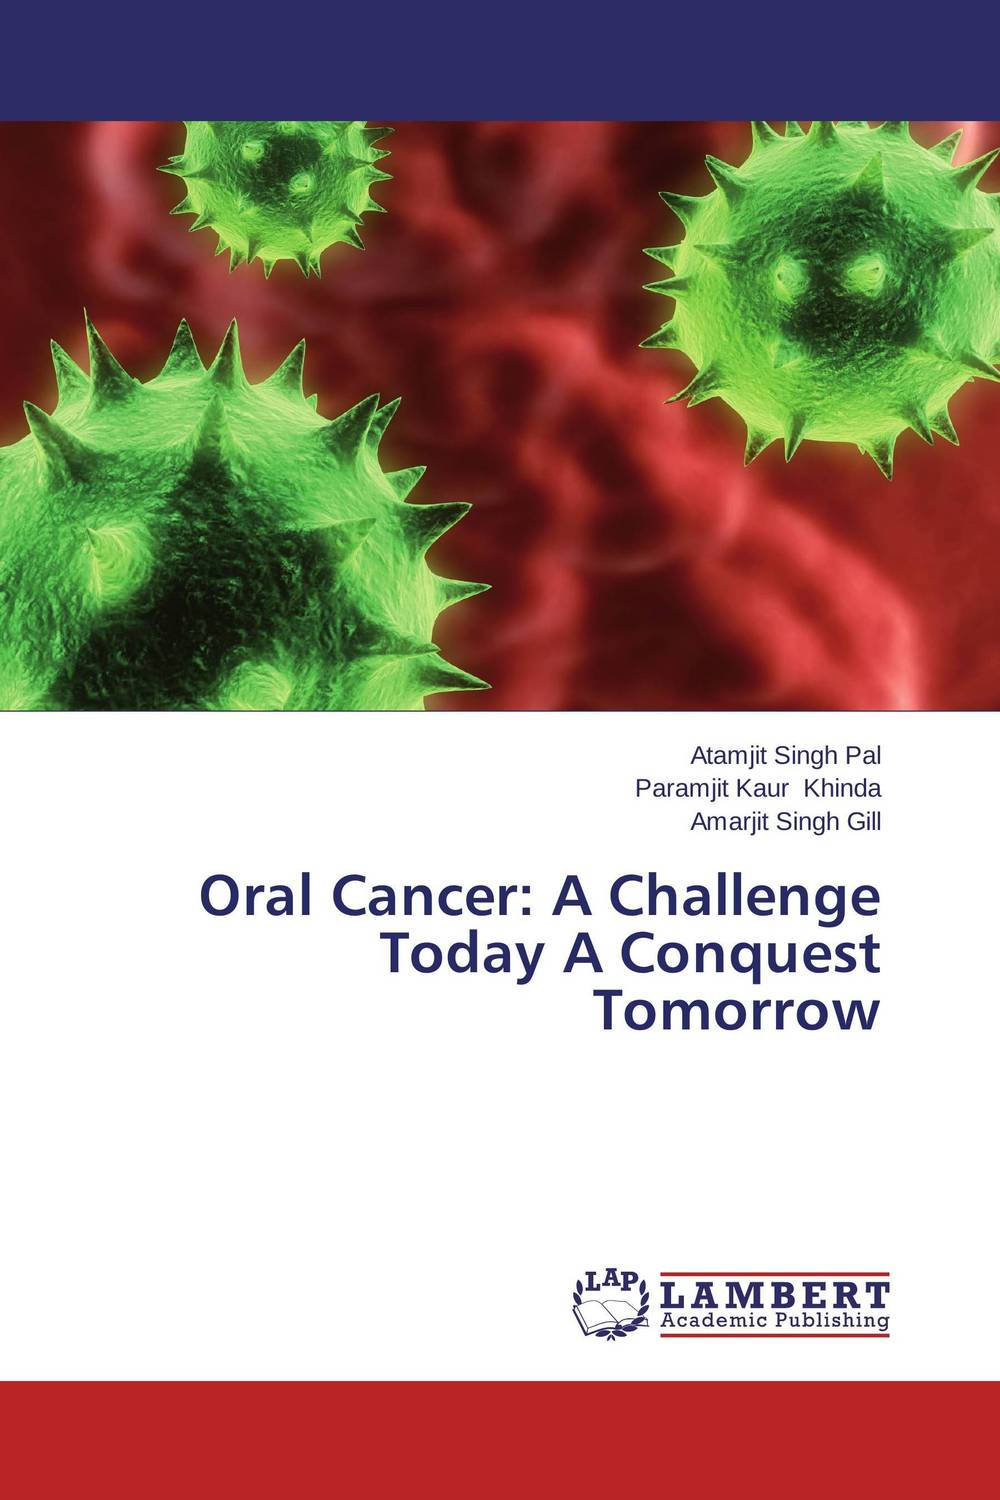 Oral Cancer: A Challenge Today A Conquest Tomorrow catalog avon today tomorrow